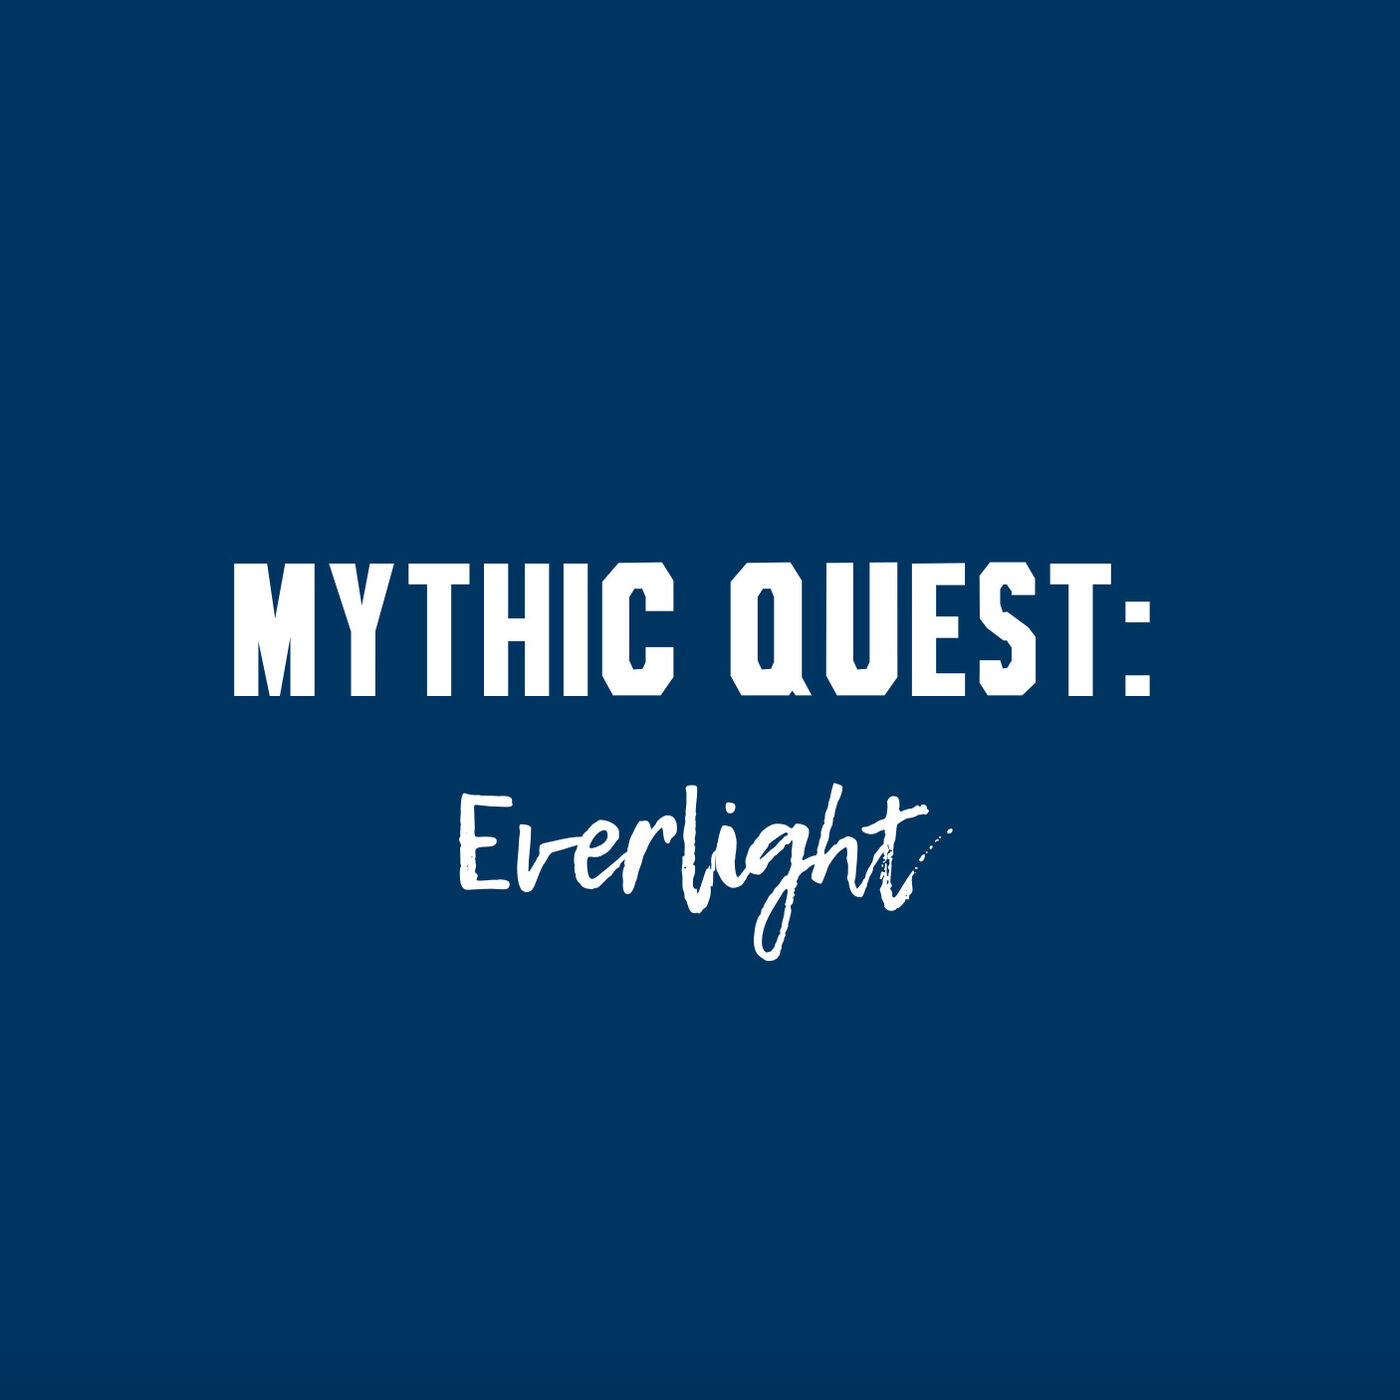 """Episode 60: The Hope of Mythic Quest's """"Everlight"""""""